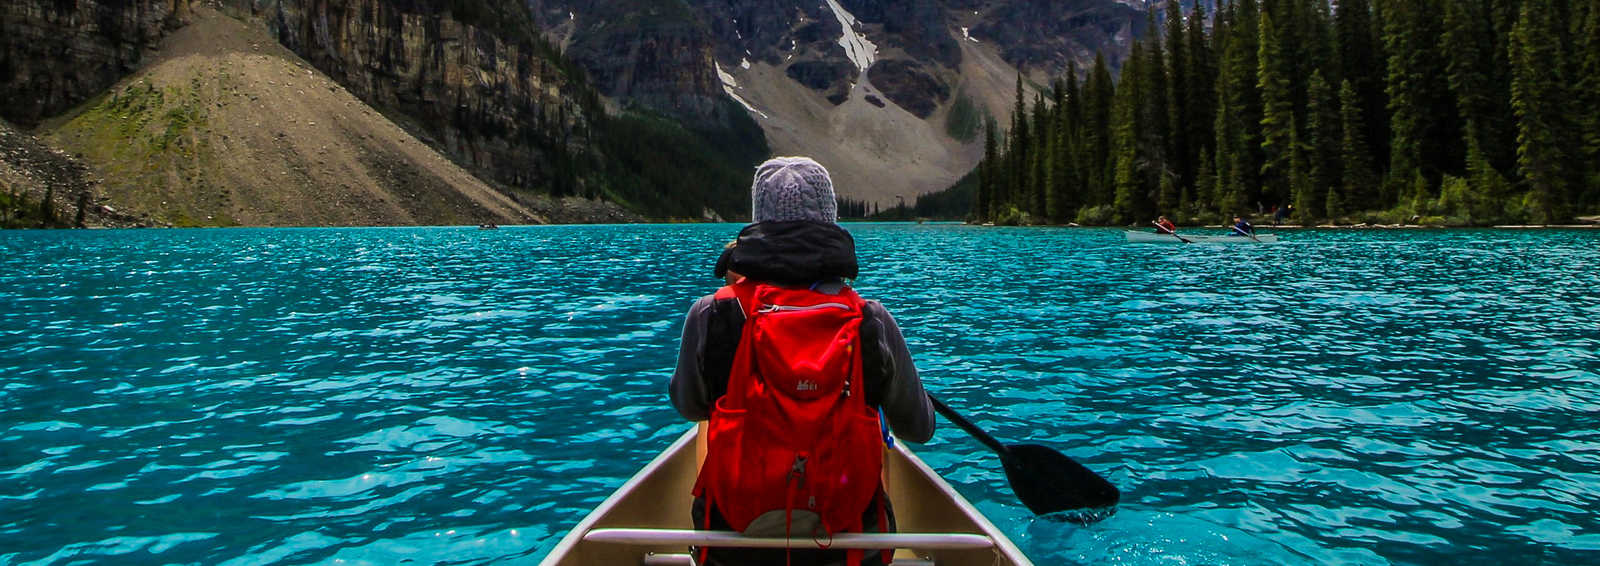 Canoeing on the incredible turquoise water of Moraine Lake, in Banff National Park